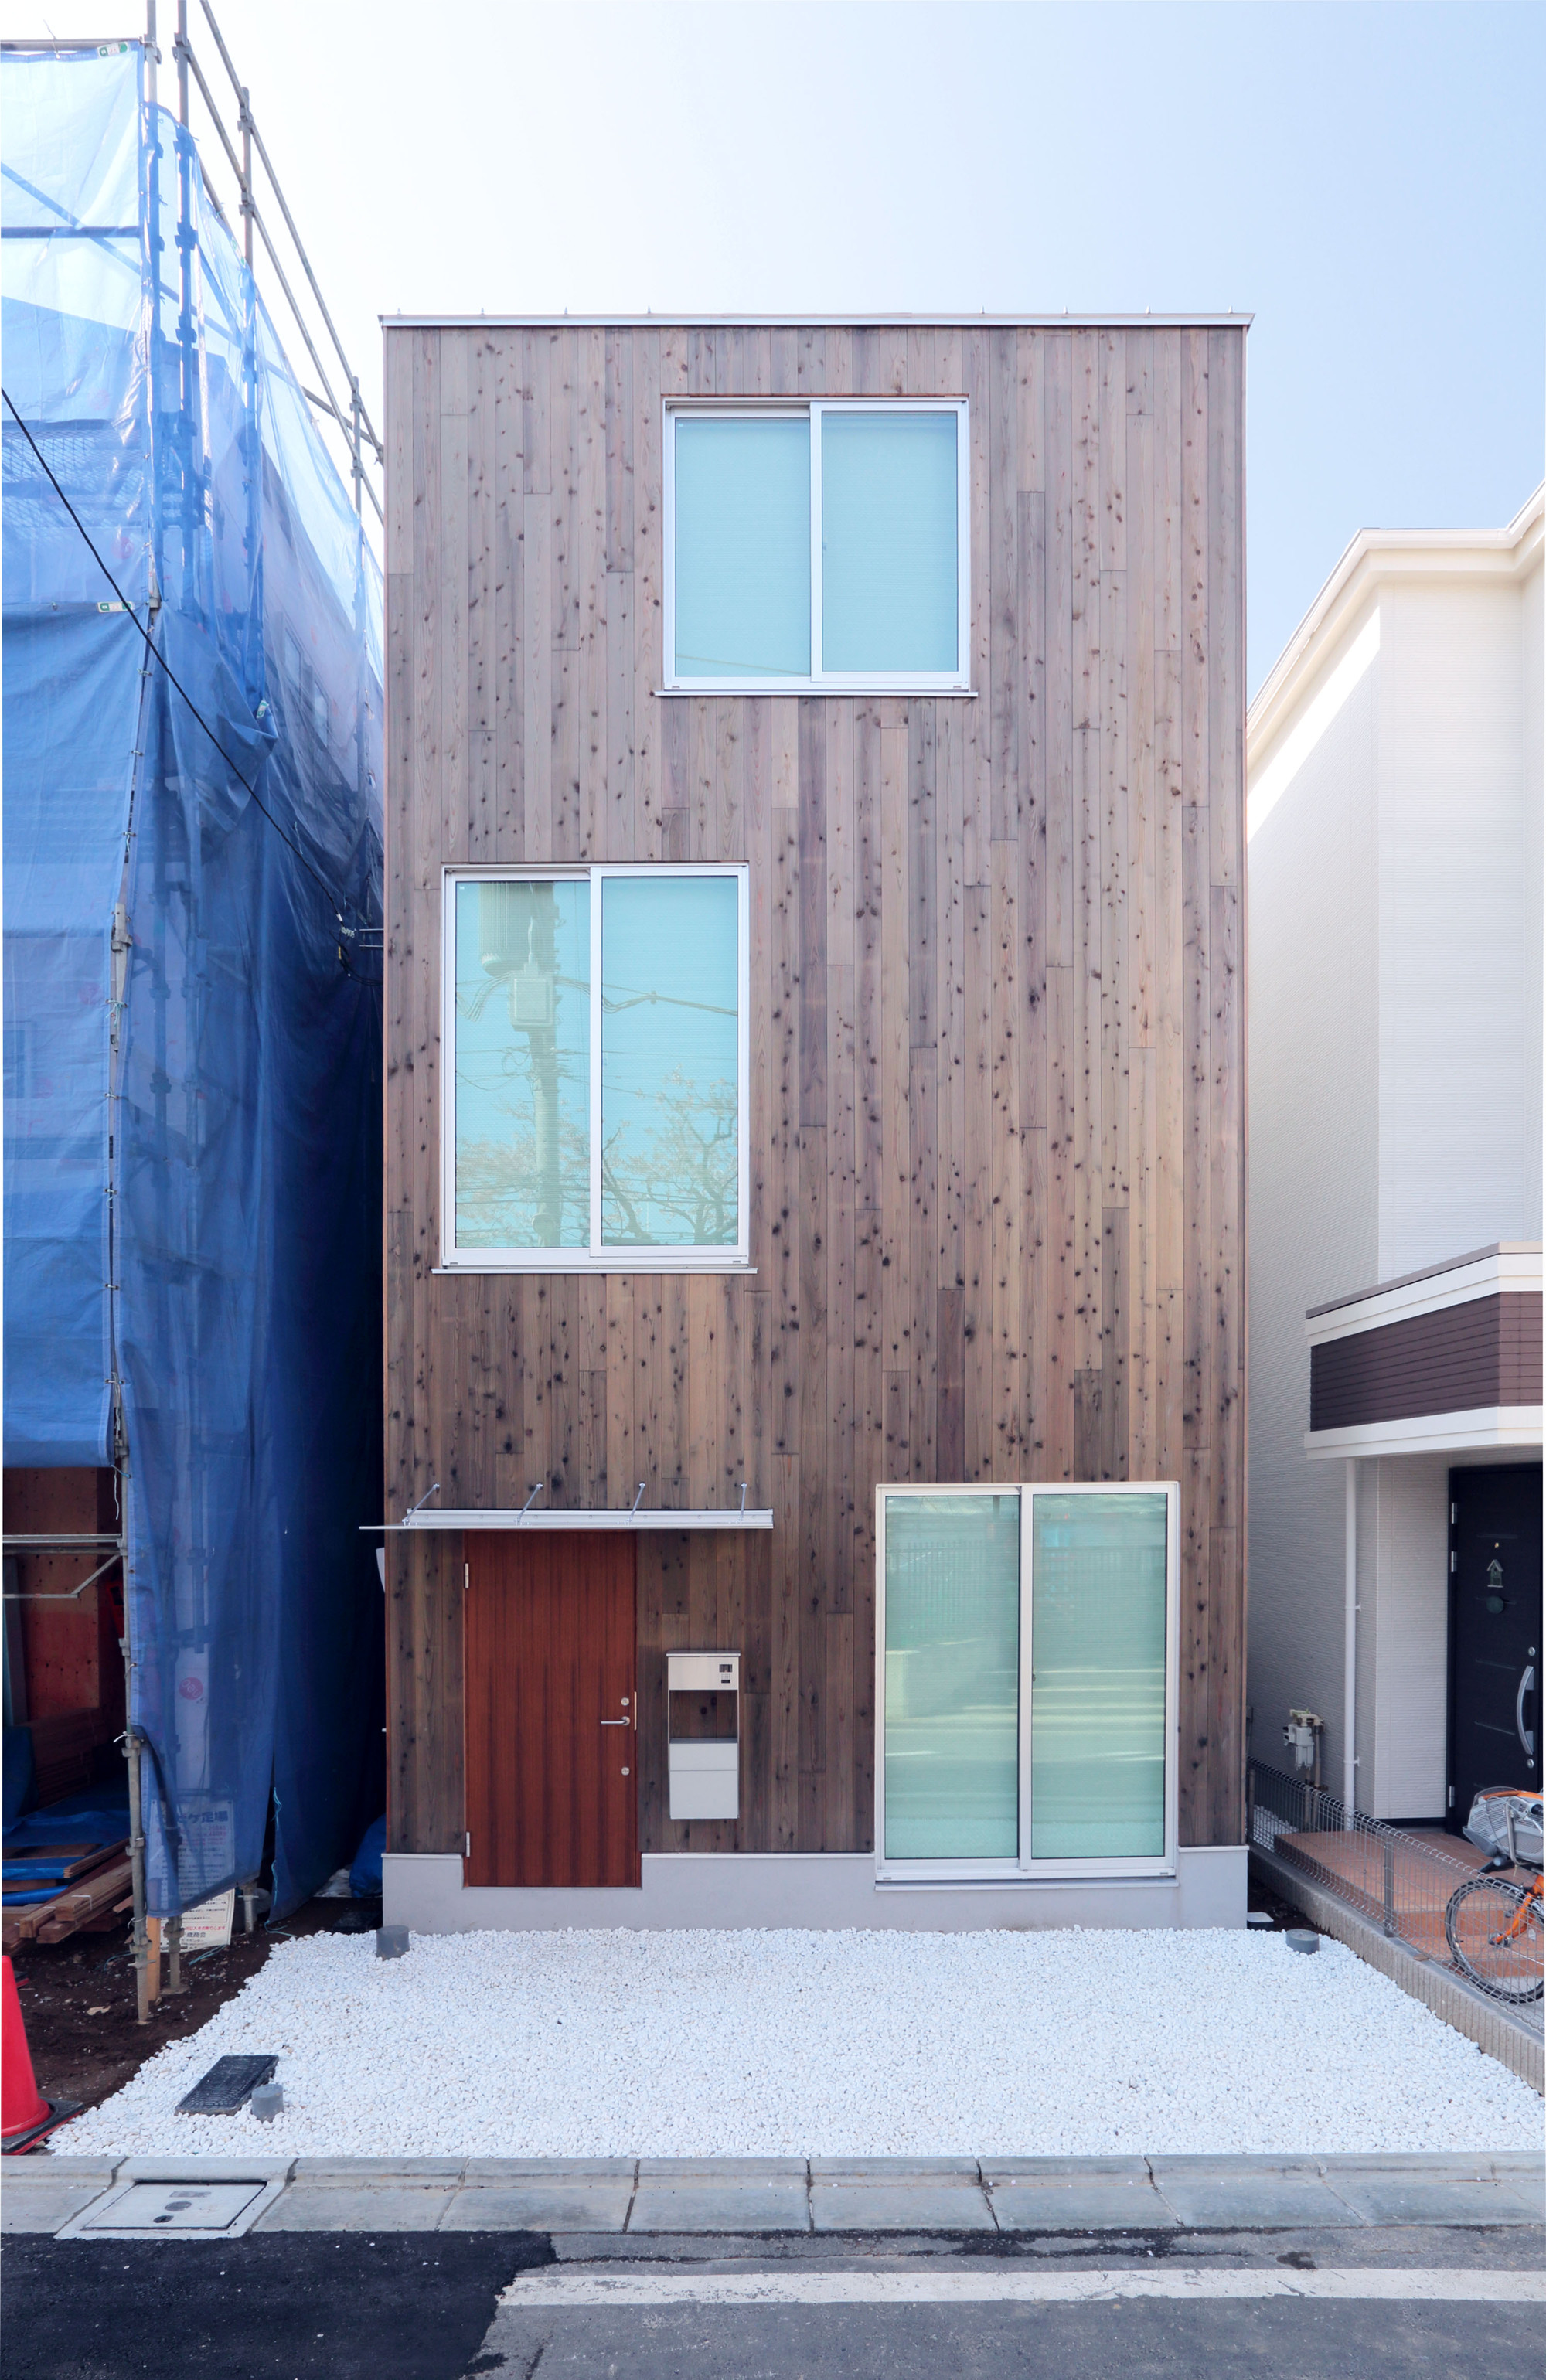 gallery of design your own home with muji's prefab vertical house - 1